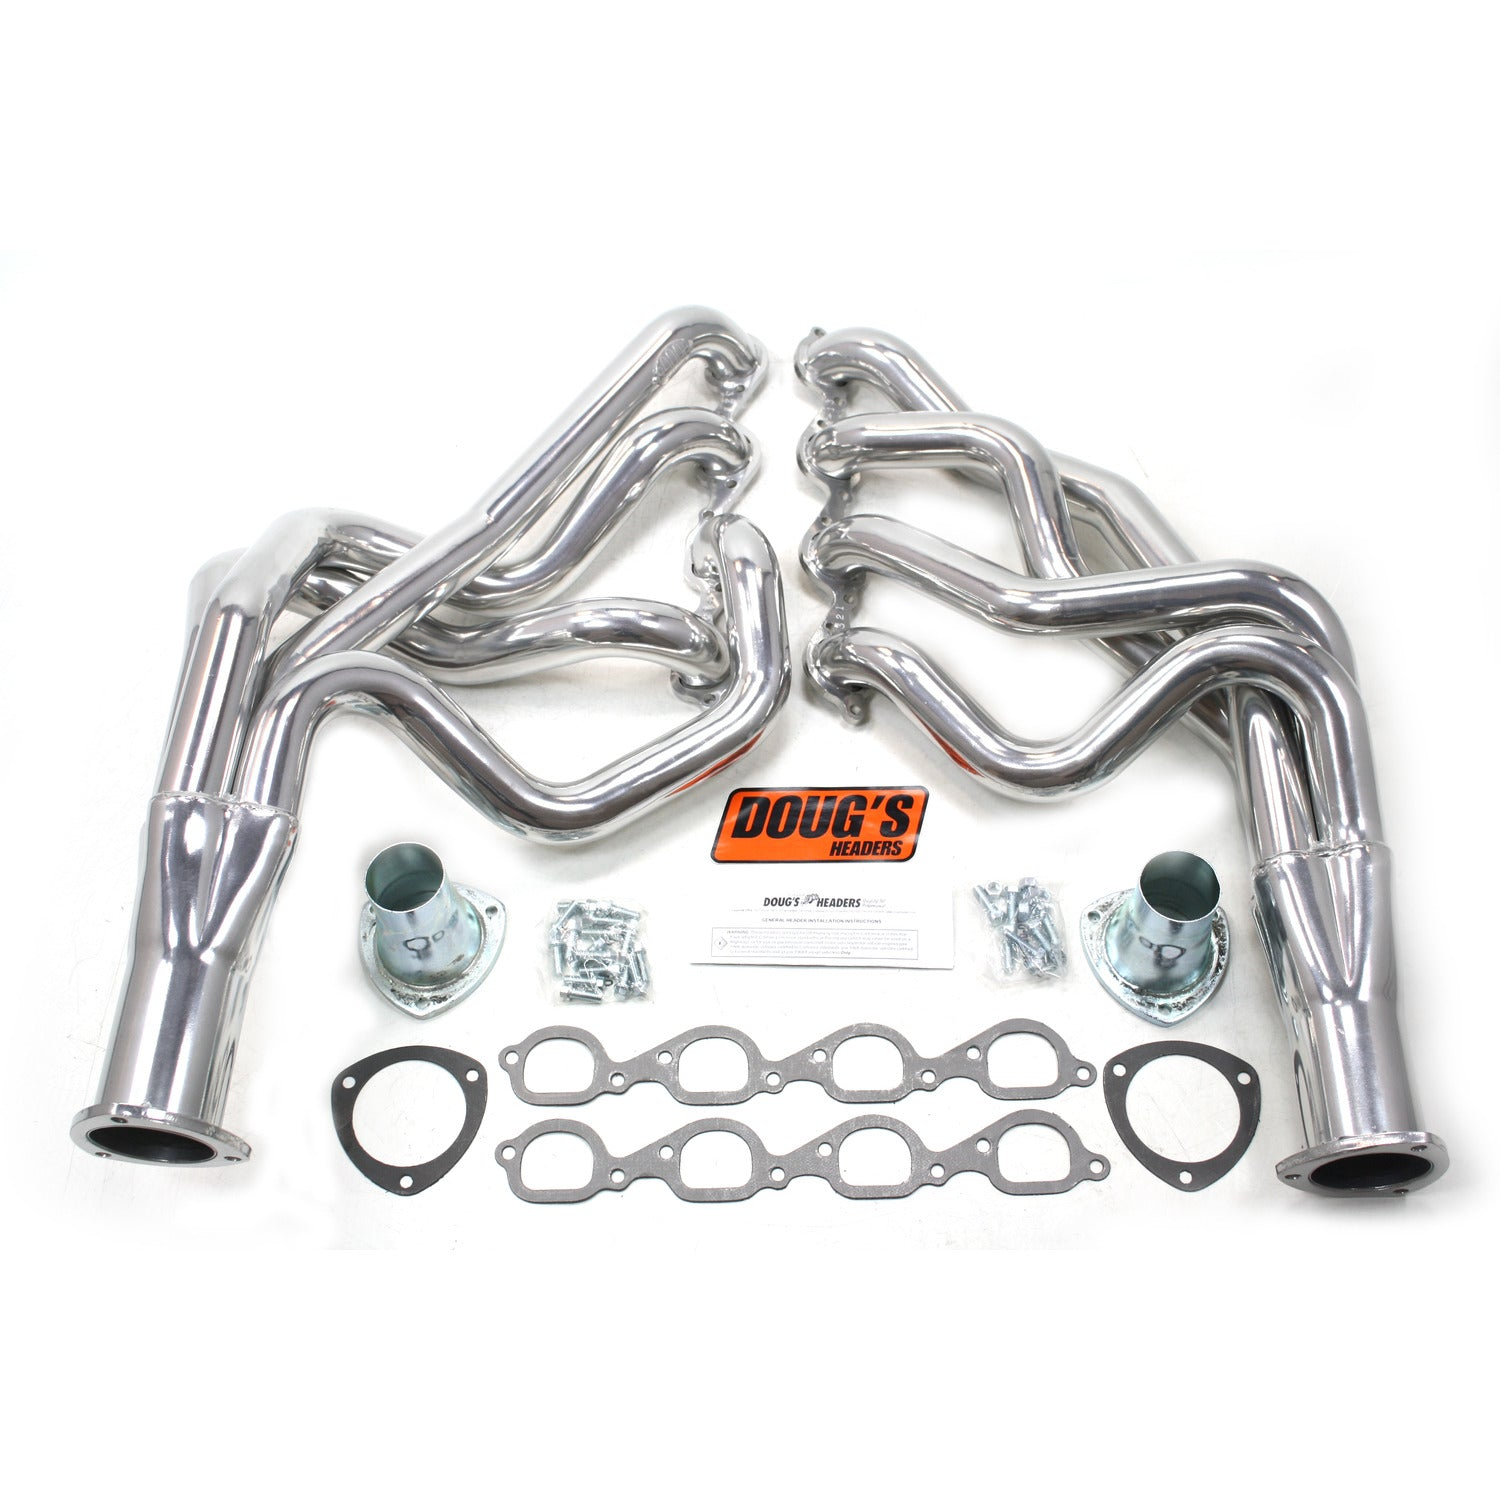 "Doug's Headers D321 2 1/8"" 4-Tube Full Length Header Chevrolet Camaro 572 67-69 Metallic Ceramic Coating"